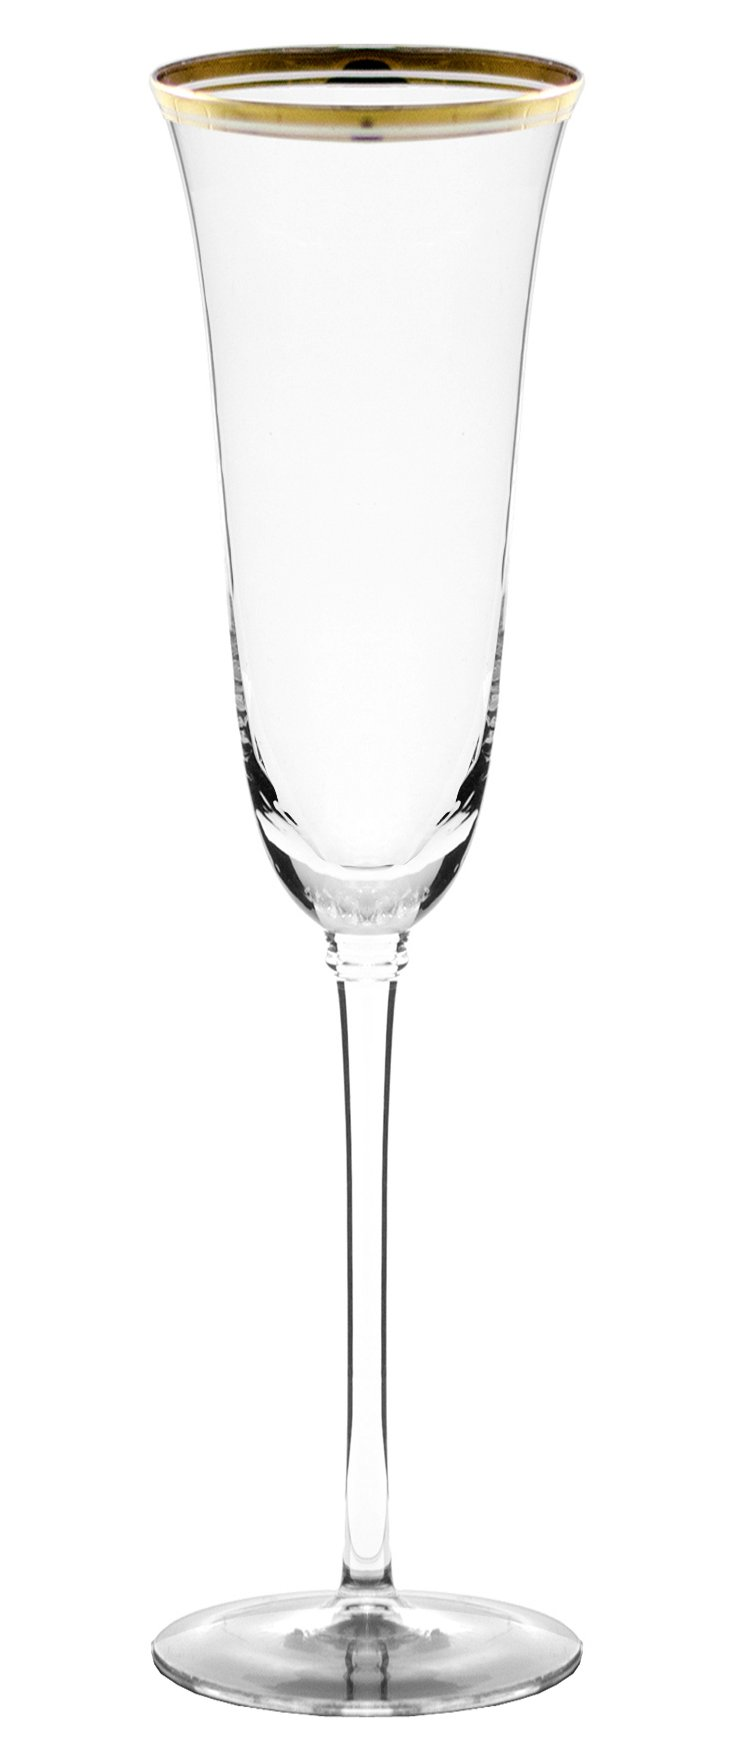 S/4 Windsor Champagne Flutes, Gold